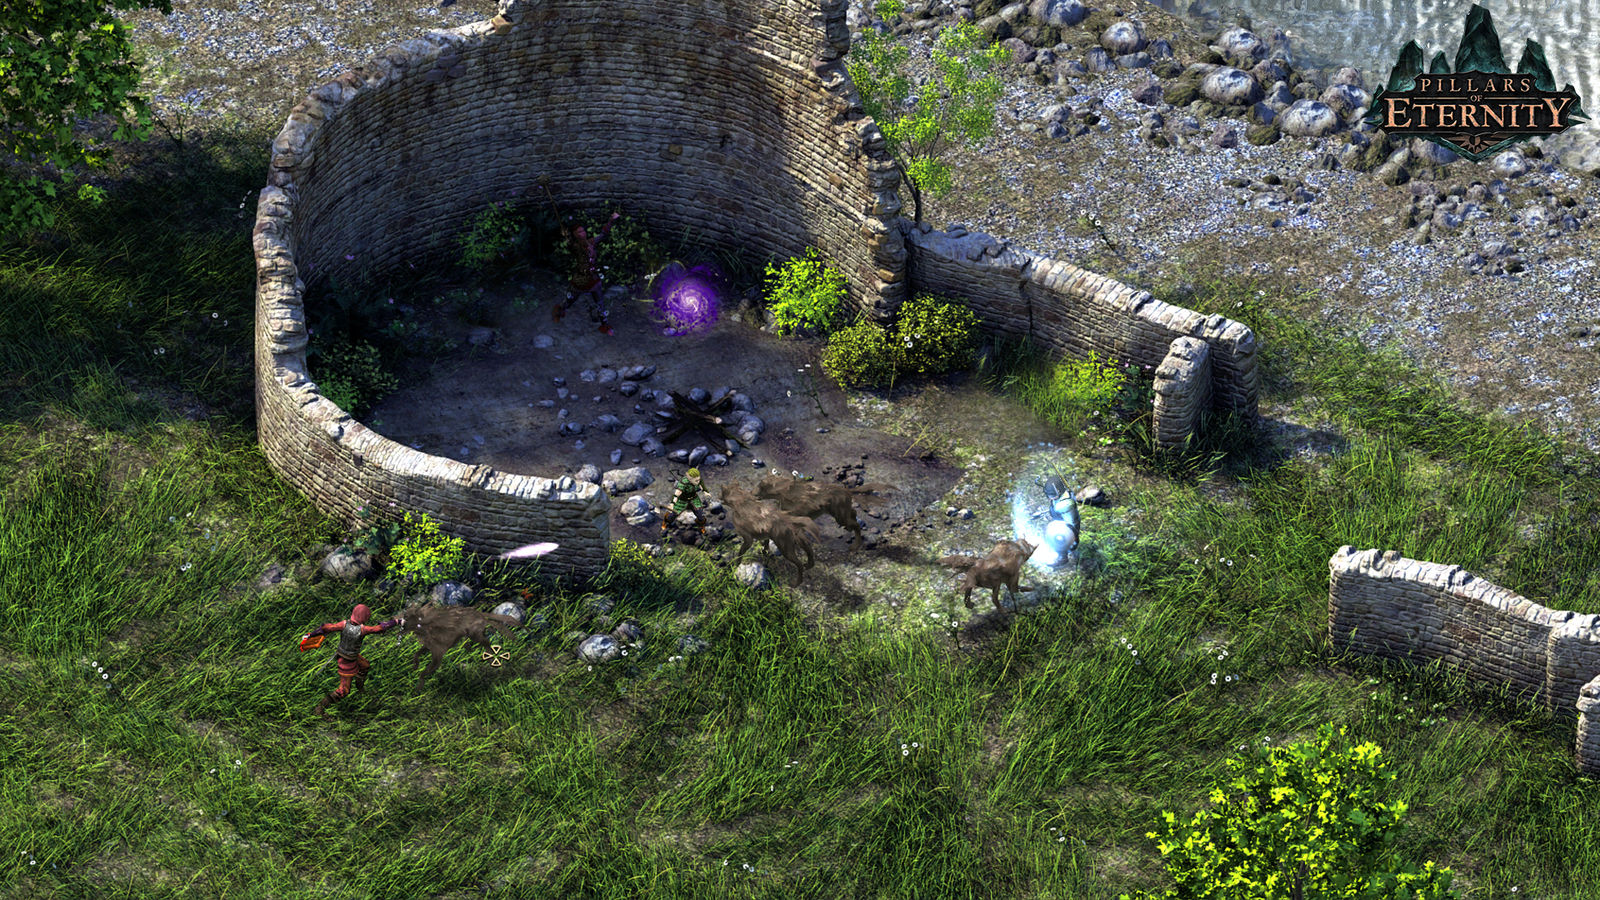 Pillars of Eternity Hero Edition (Steam) RU/CIS